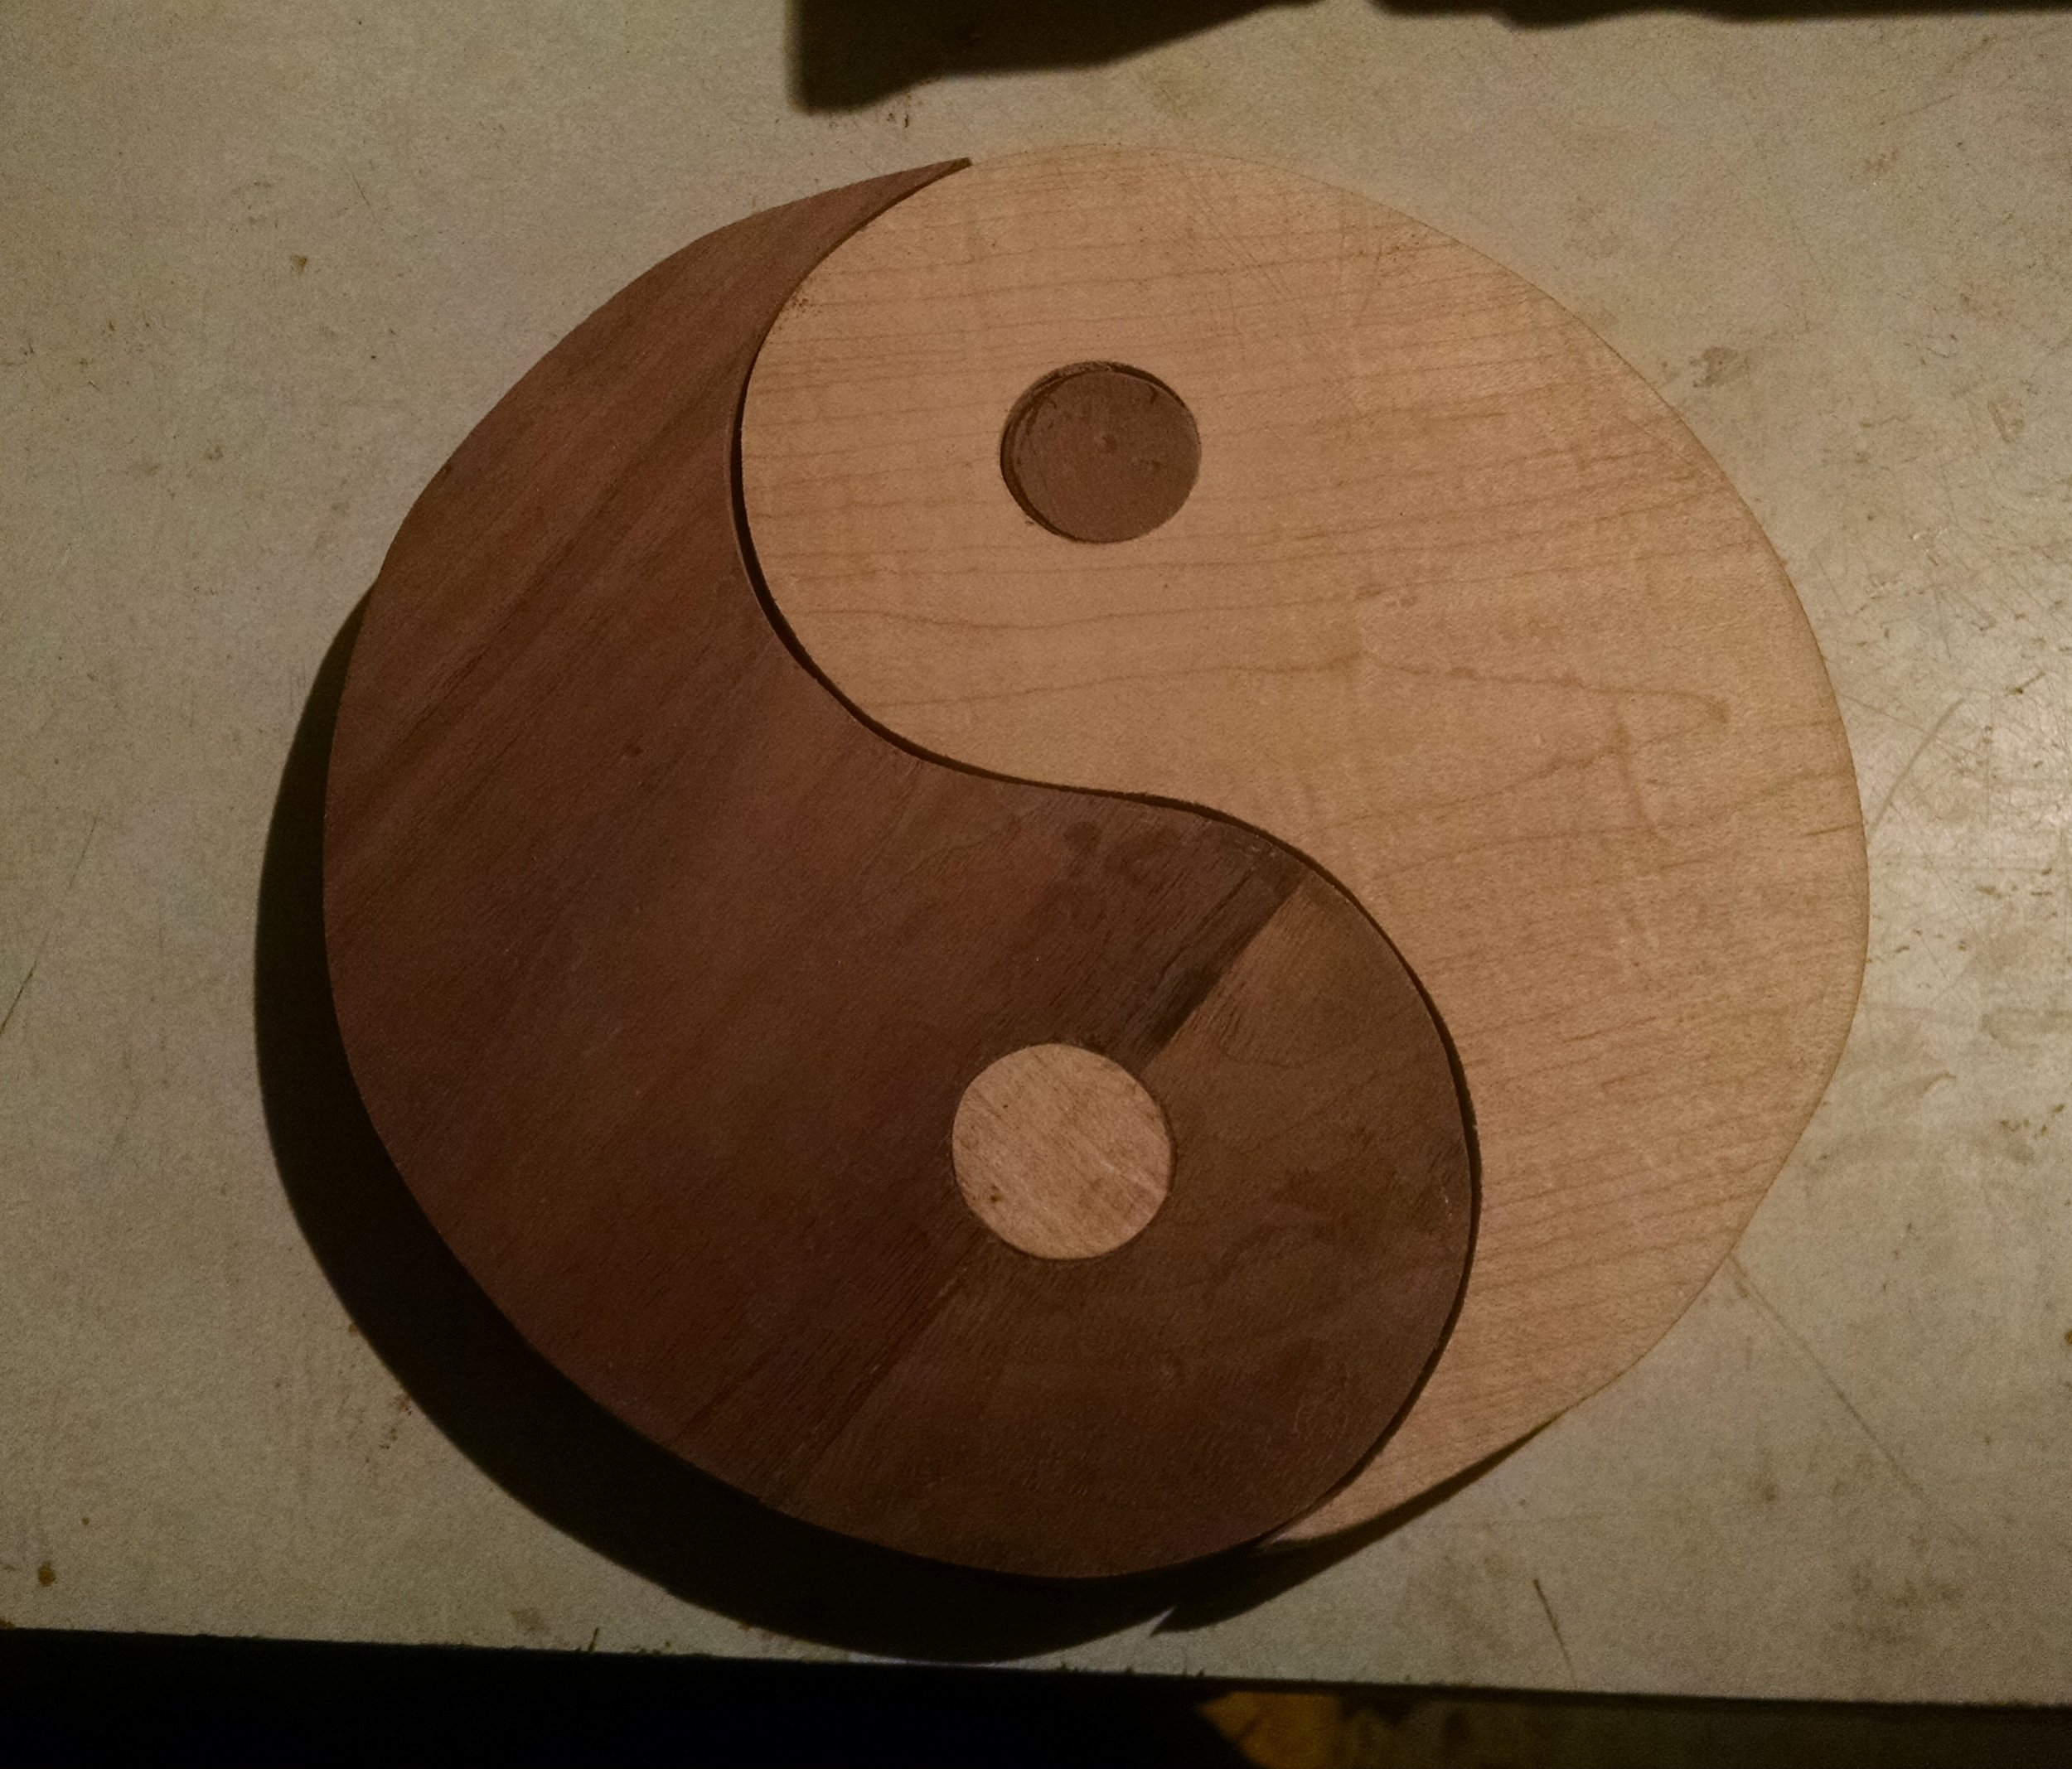 The most important thing in life is balance. I made this ying yang symbol out of walnut and maple for my friend Colleen.